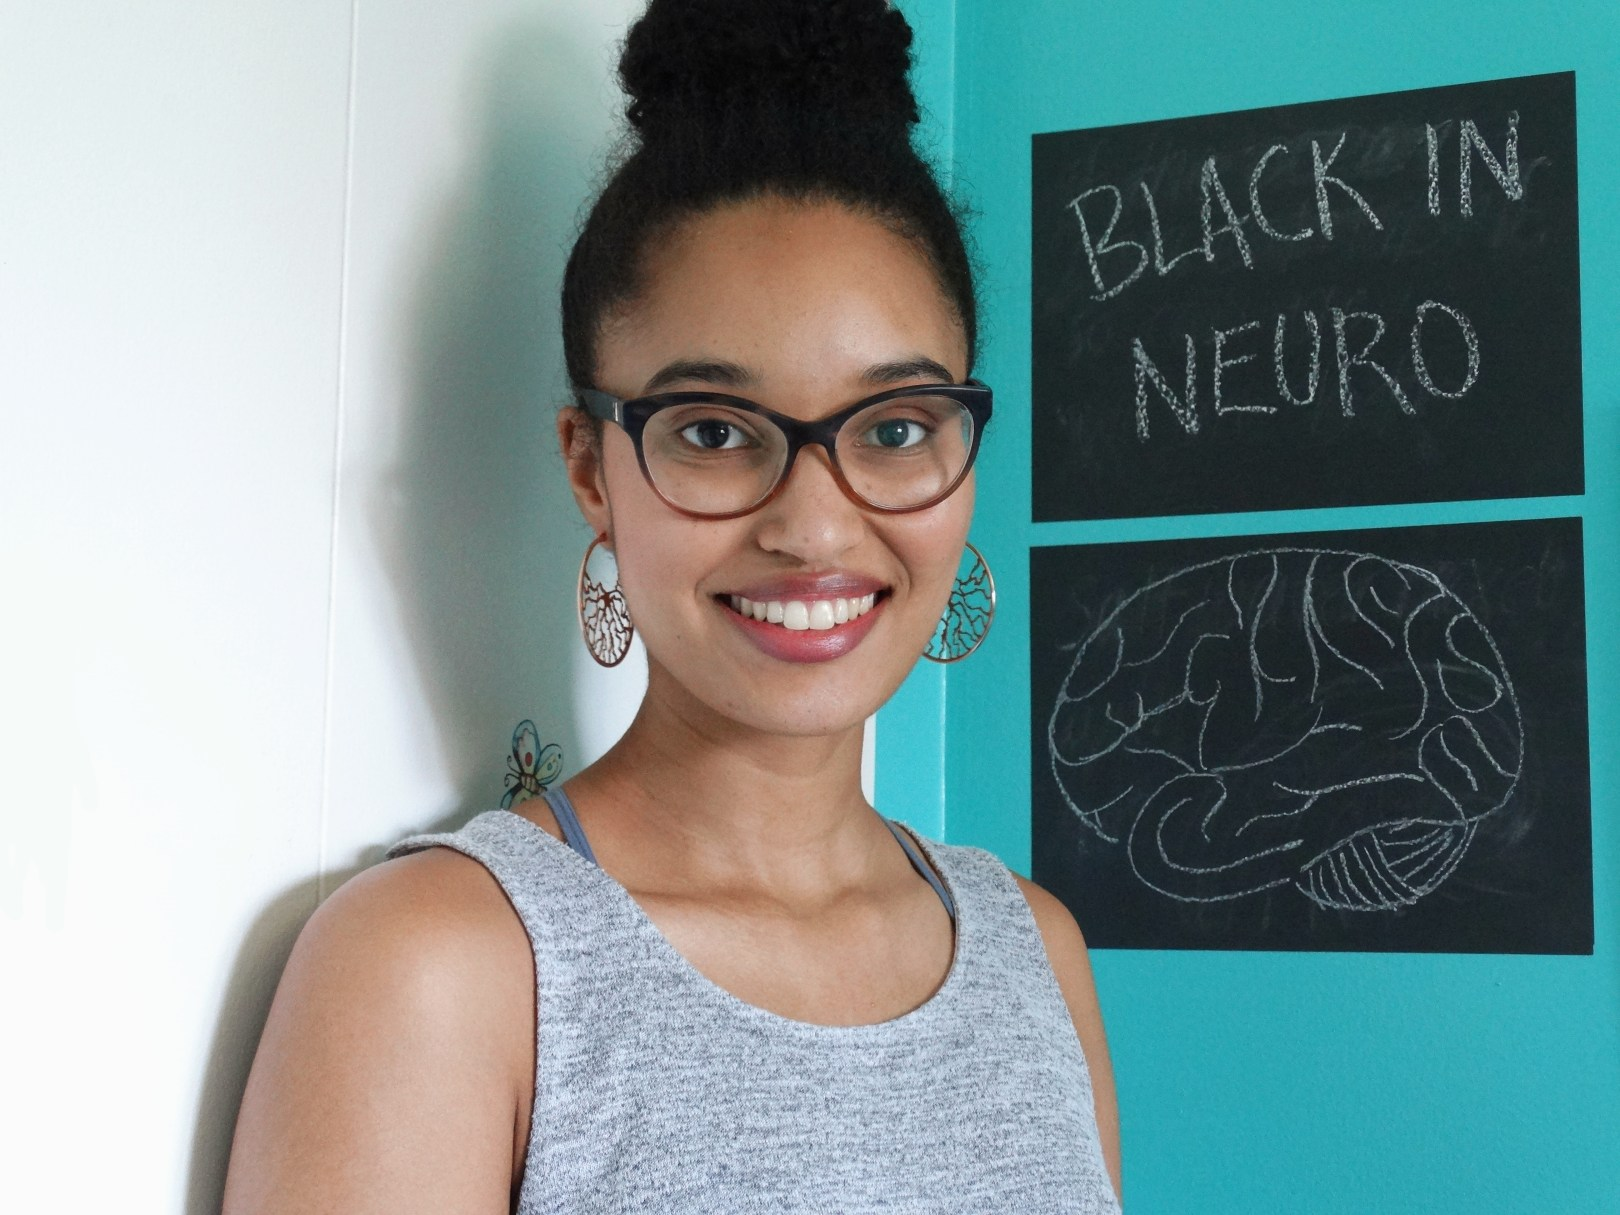 Danielle is looking at the camera, smiling wide in front of a chalkboard featuring a drawing of a brain. Text reads: Black In Neuro